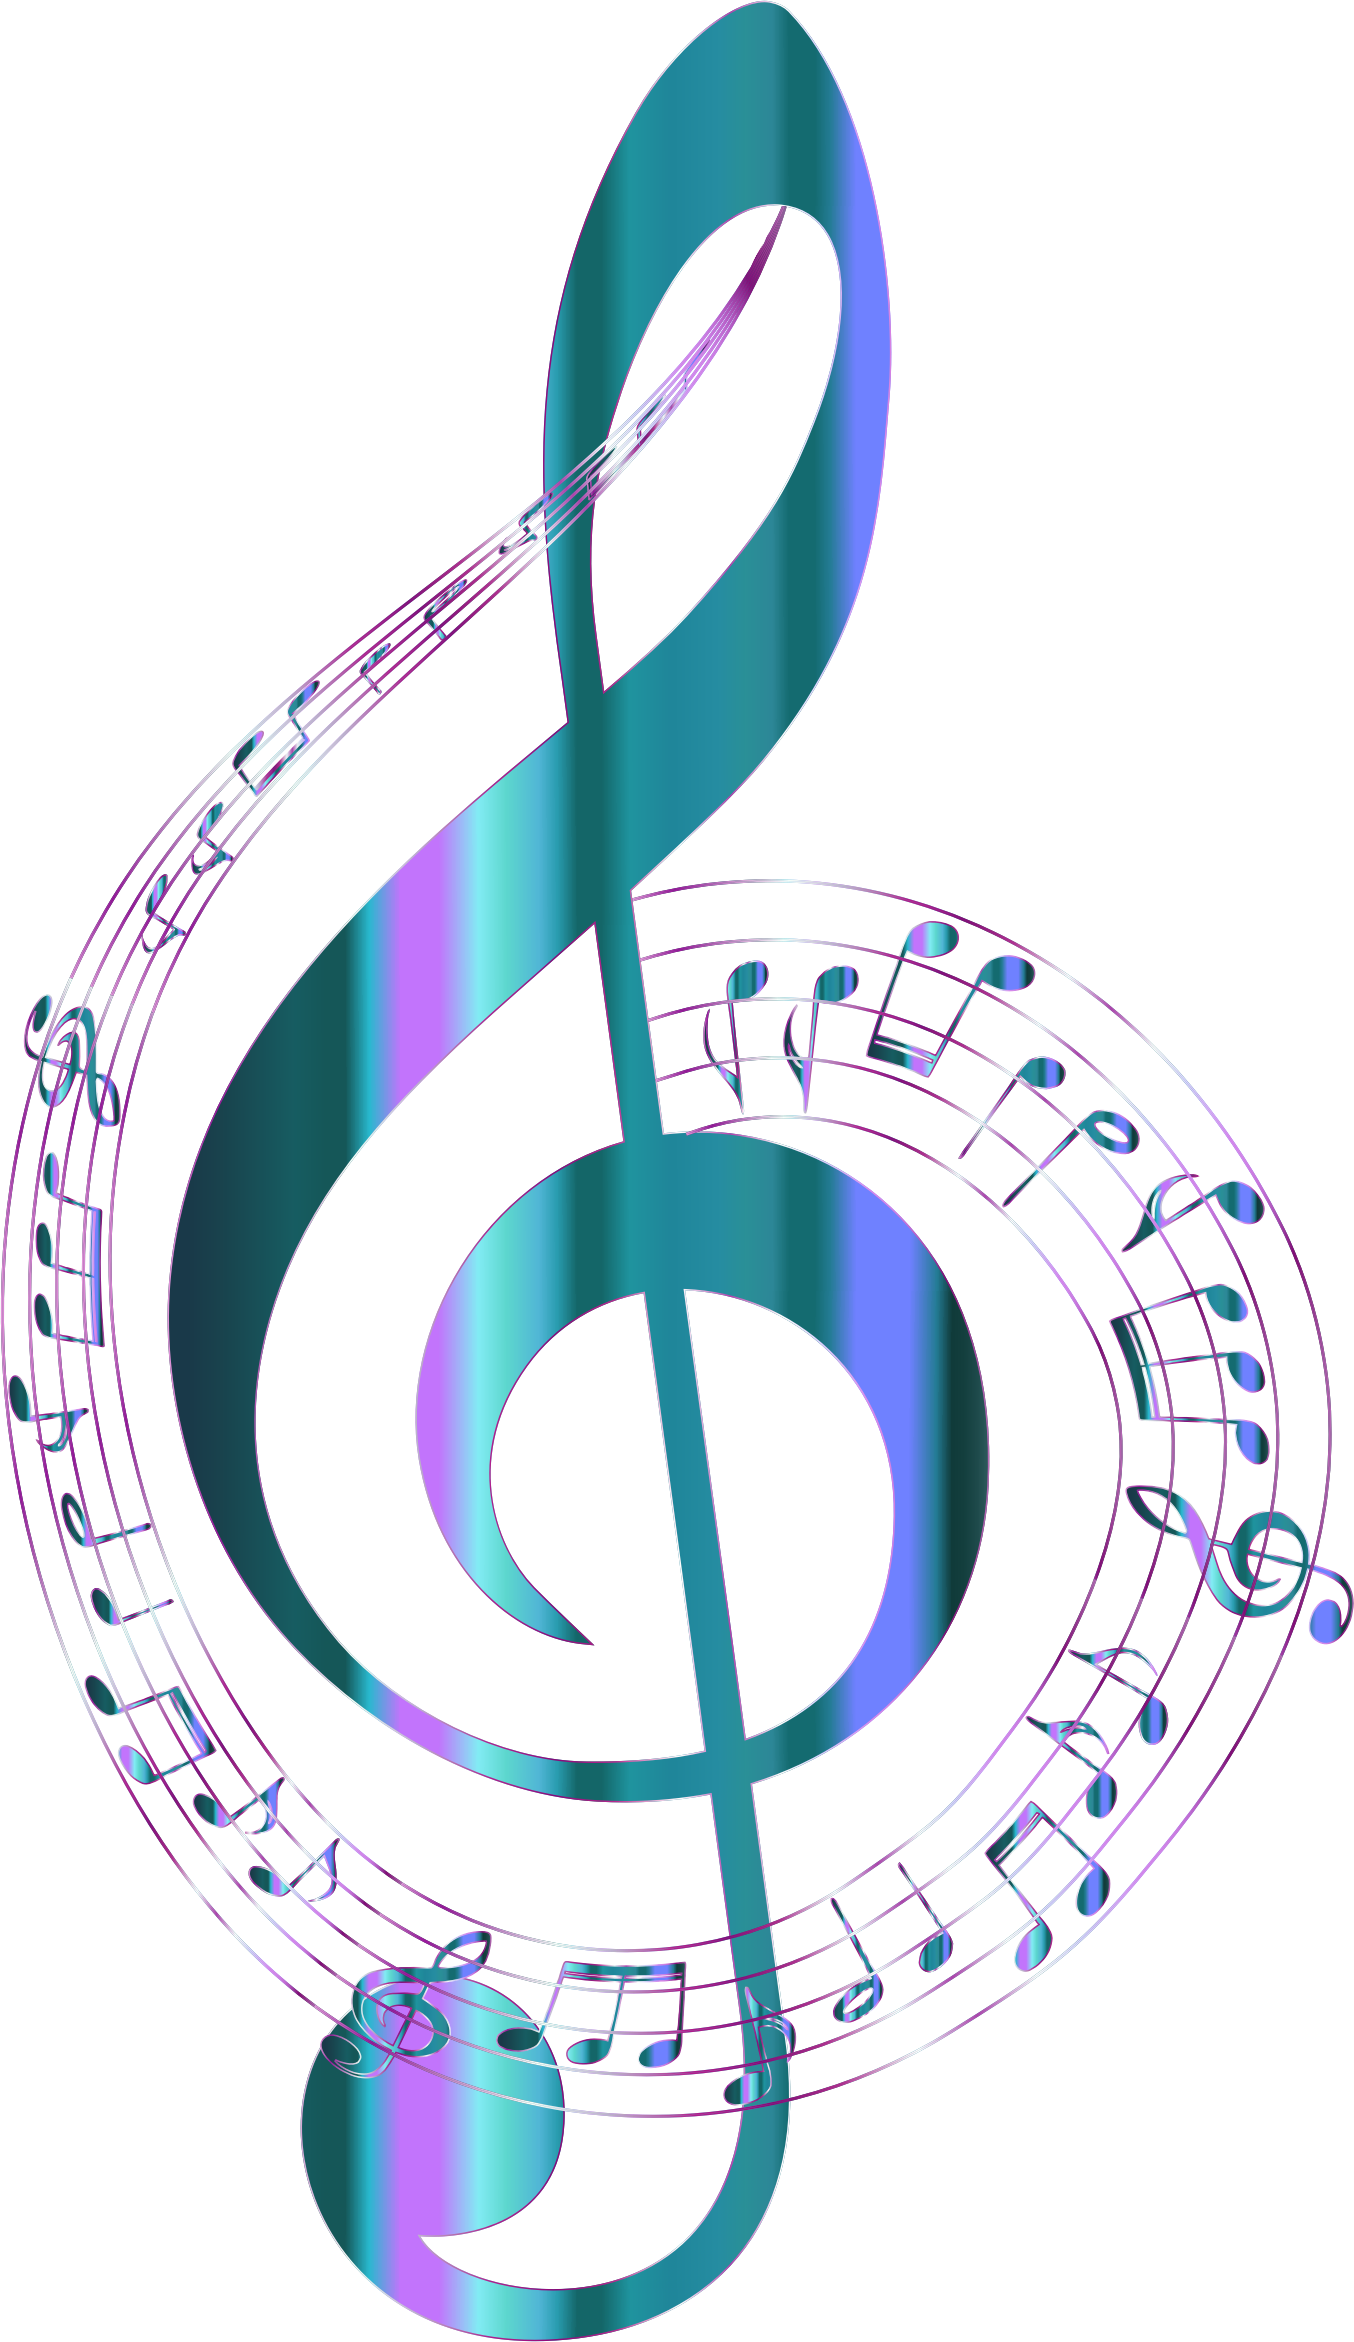 Music notes going around the sun clipart picture transparent Merry Christmas Gif Images Music Notes Clipart | errortape.me picture transparent